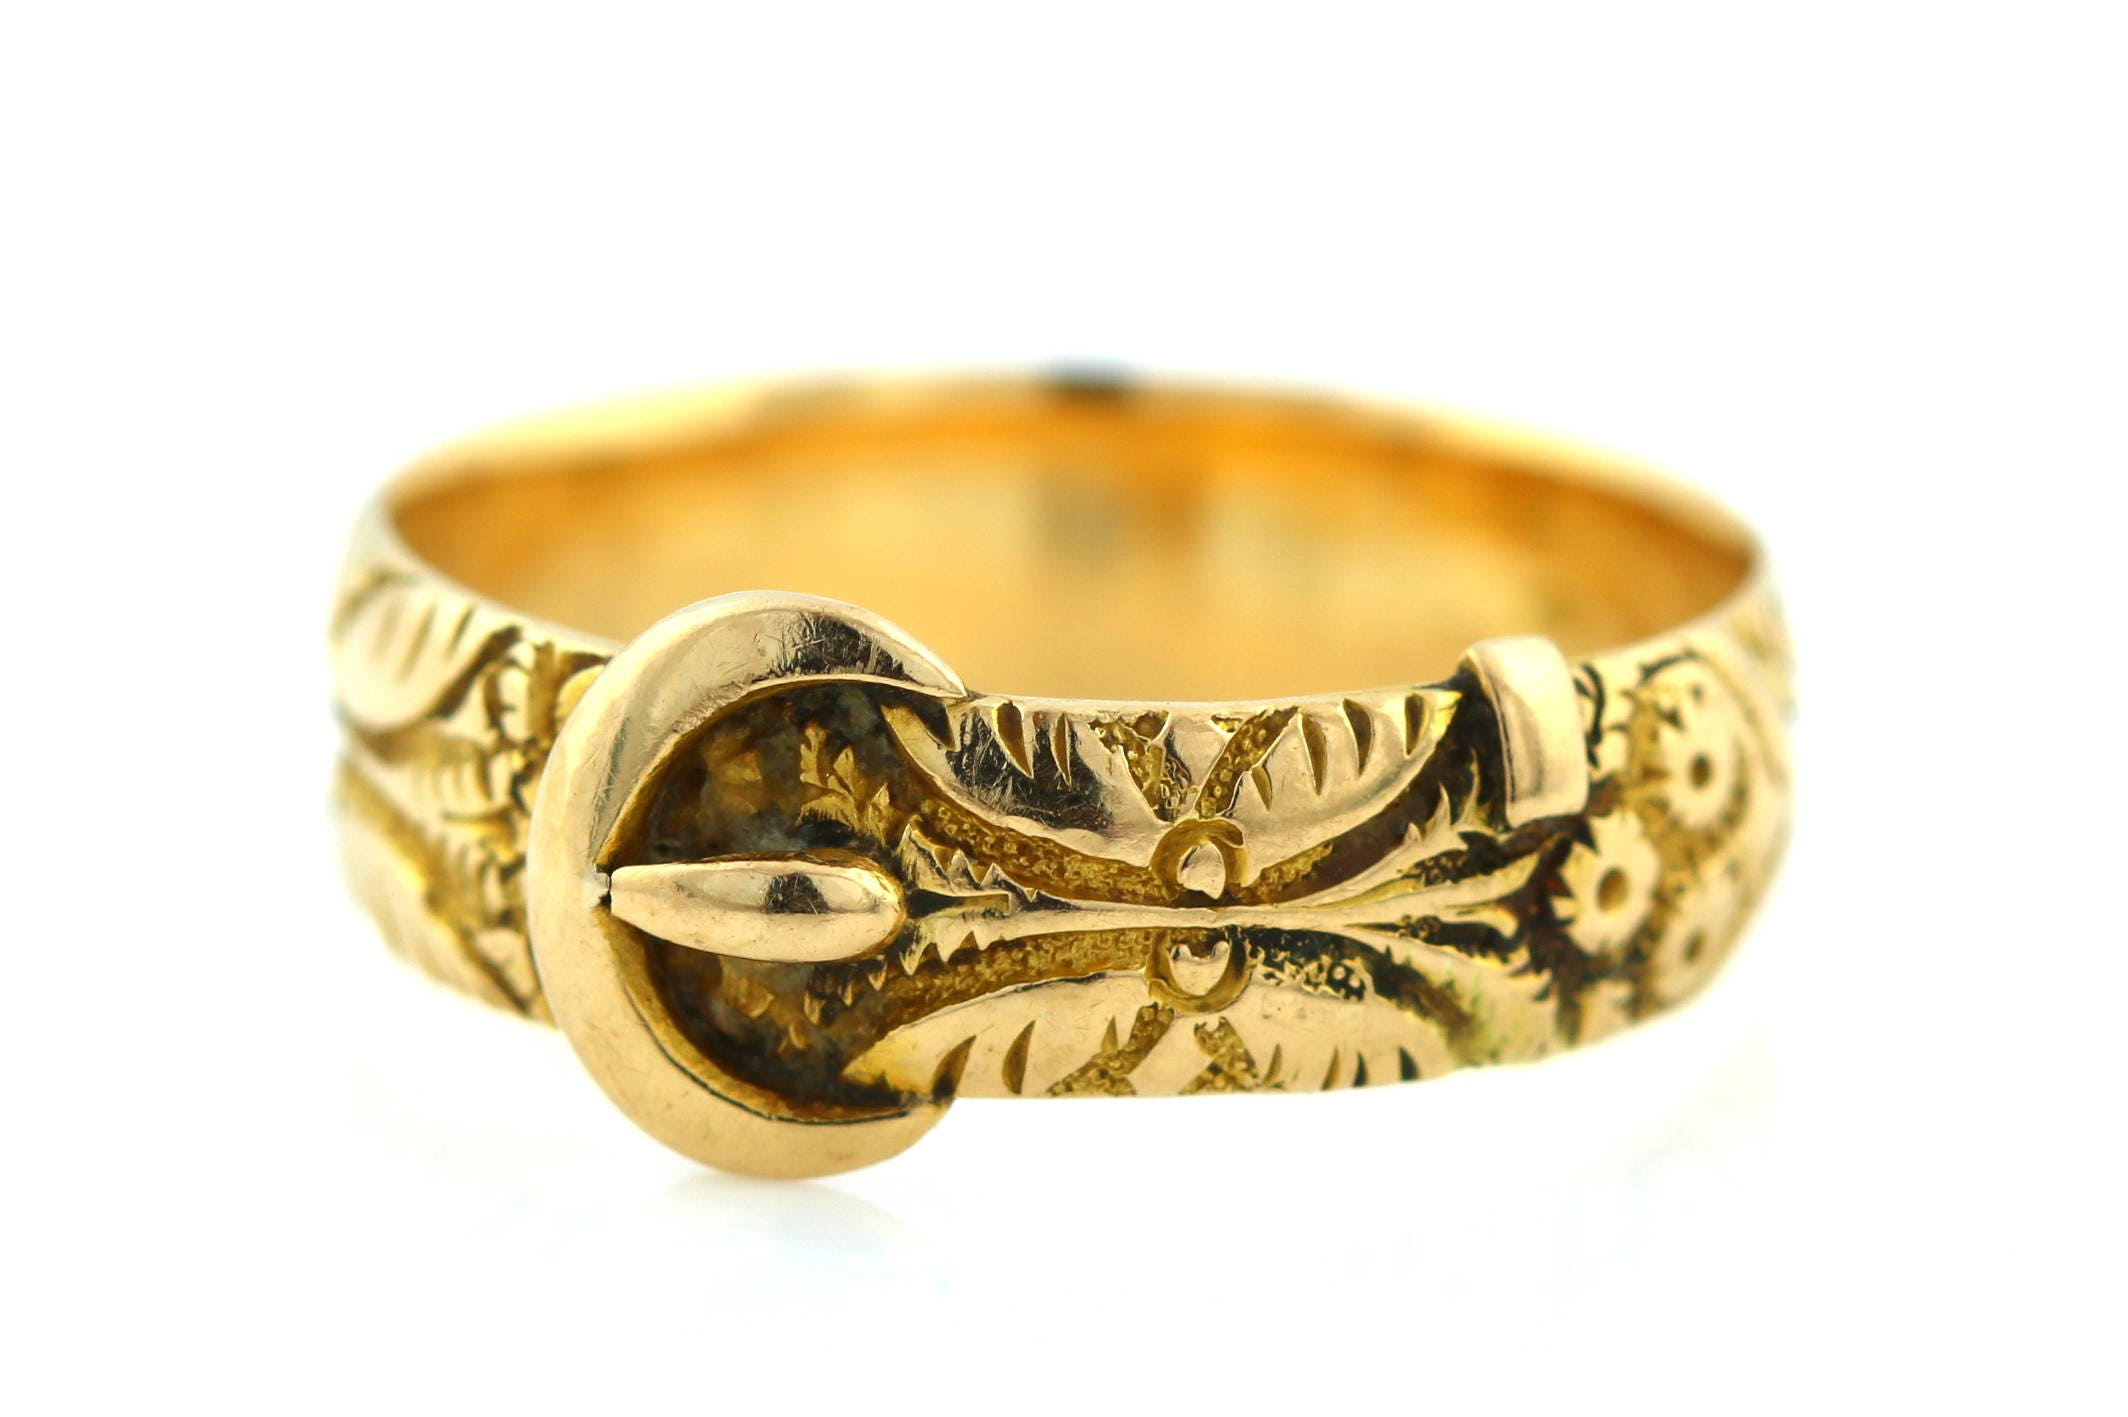 18ct Yellow Gold Victorian Buckle Ring Antique 18ct Gold Buckle Ring hallmarked  c.1886